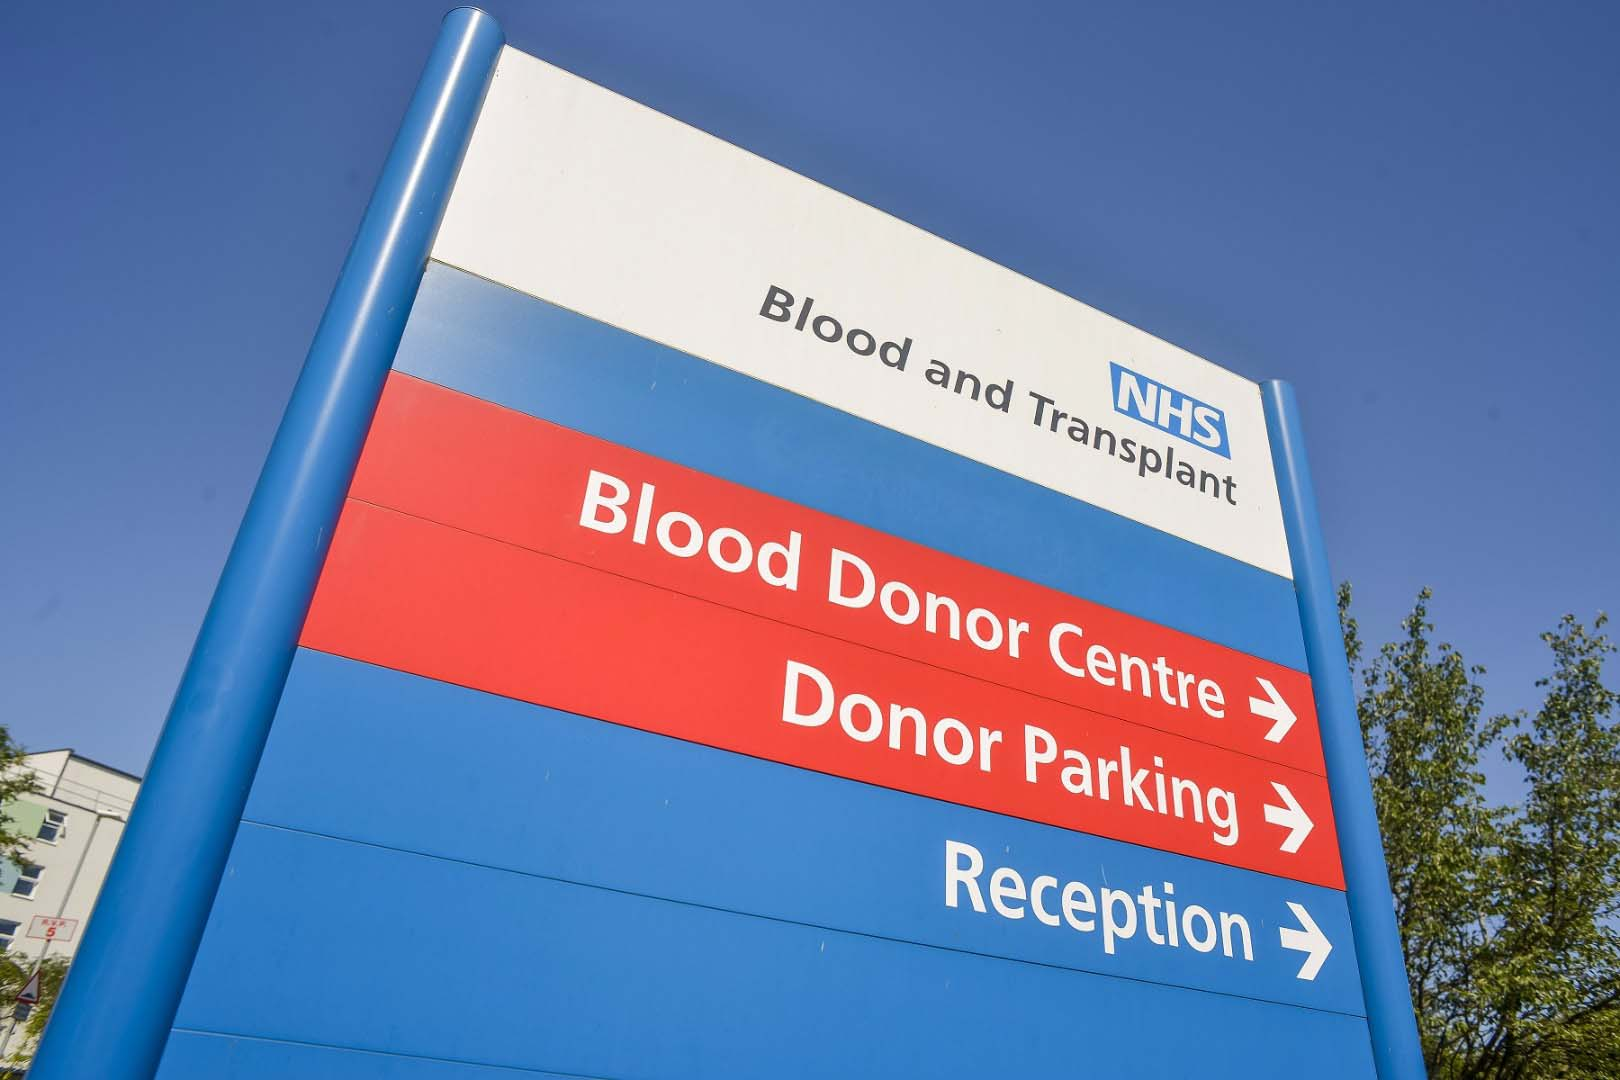 NHS Blood and Transplant Blood Donor Centre sign